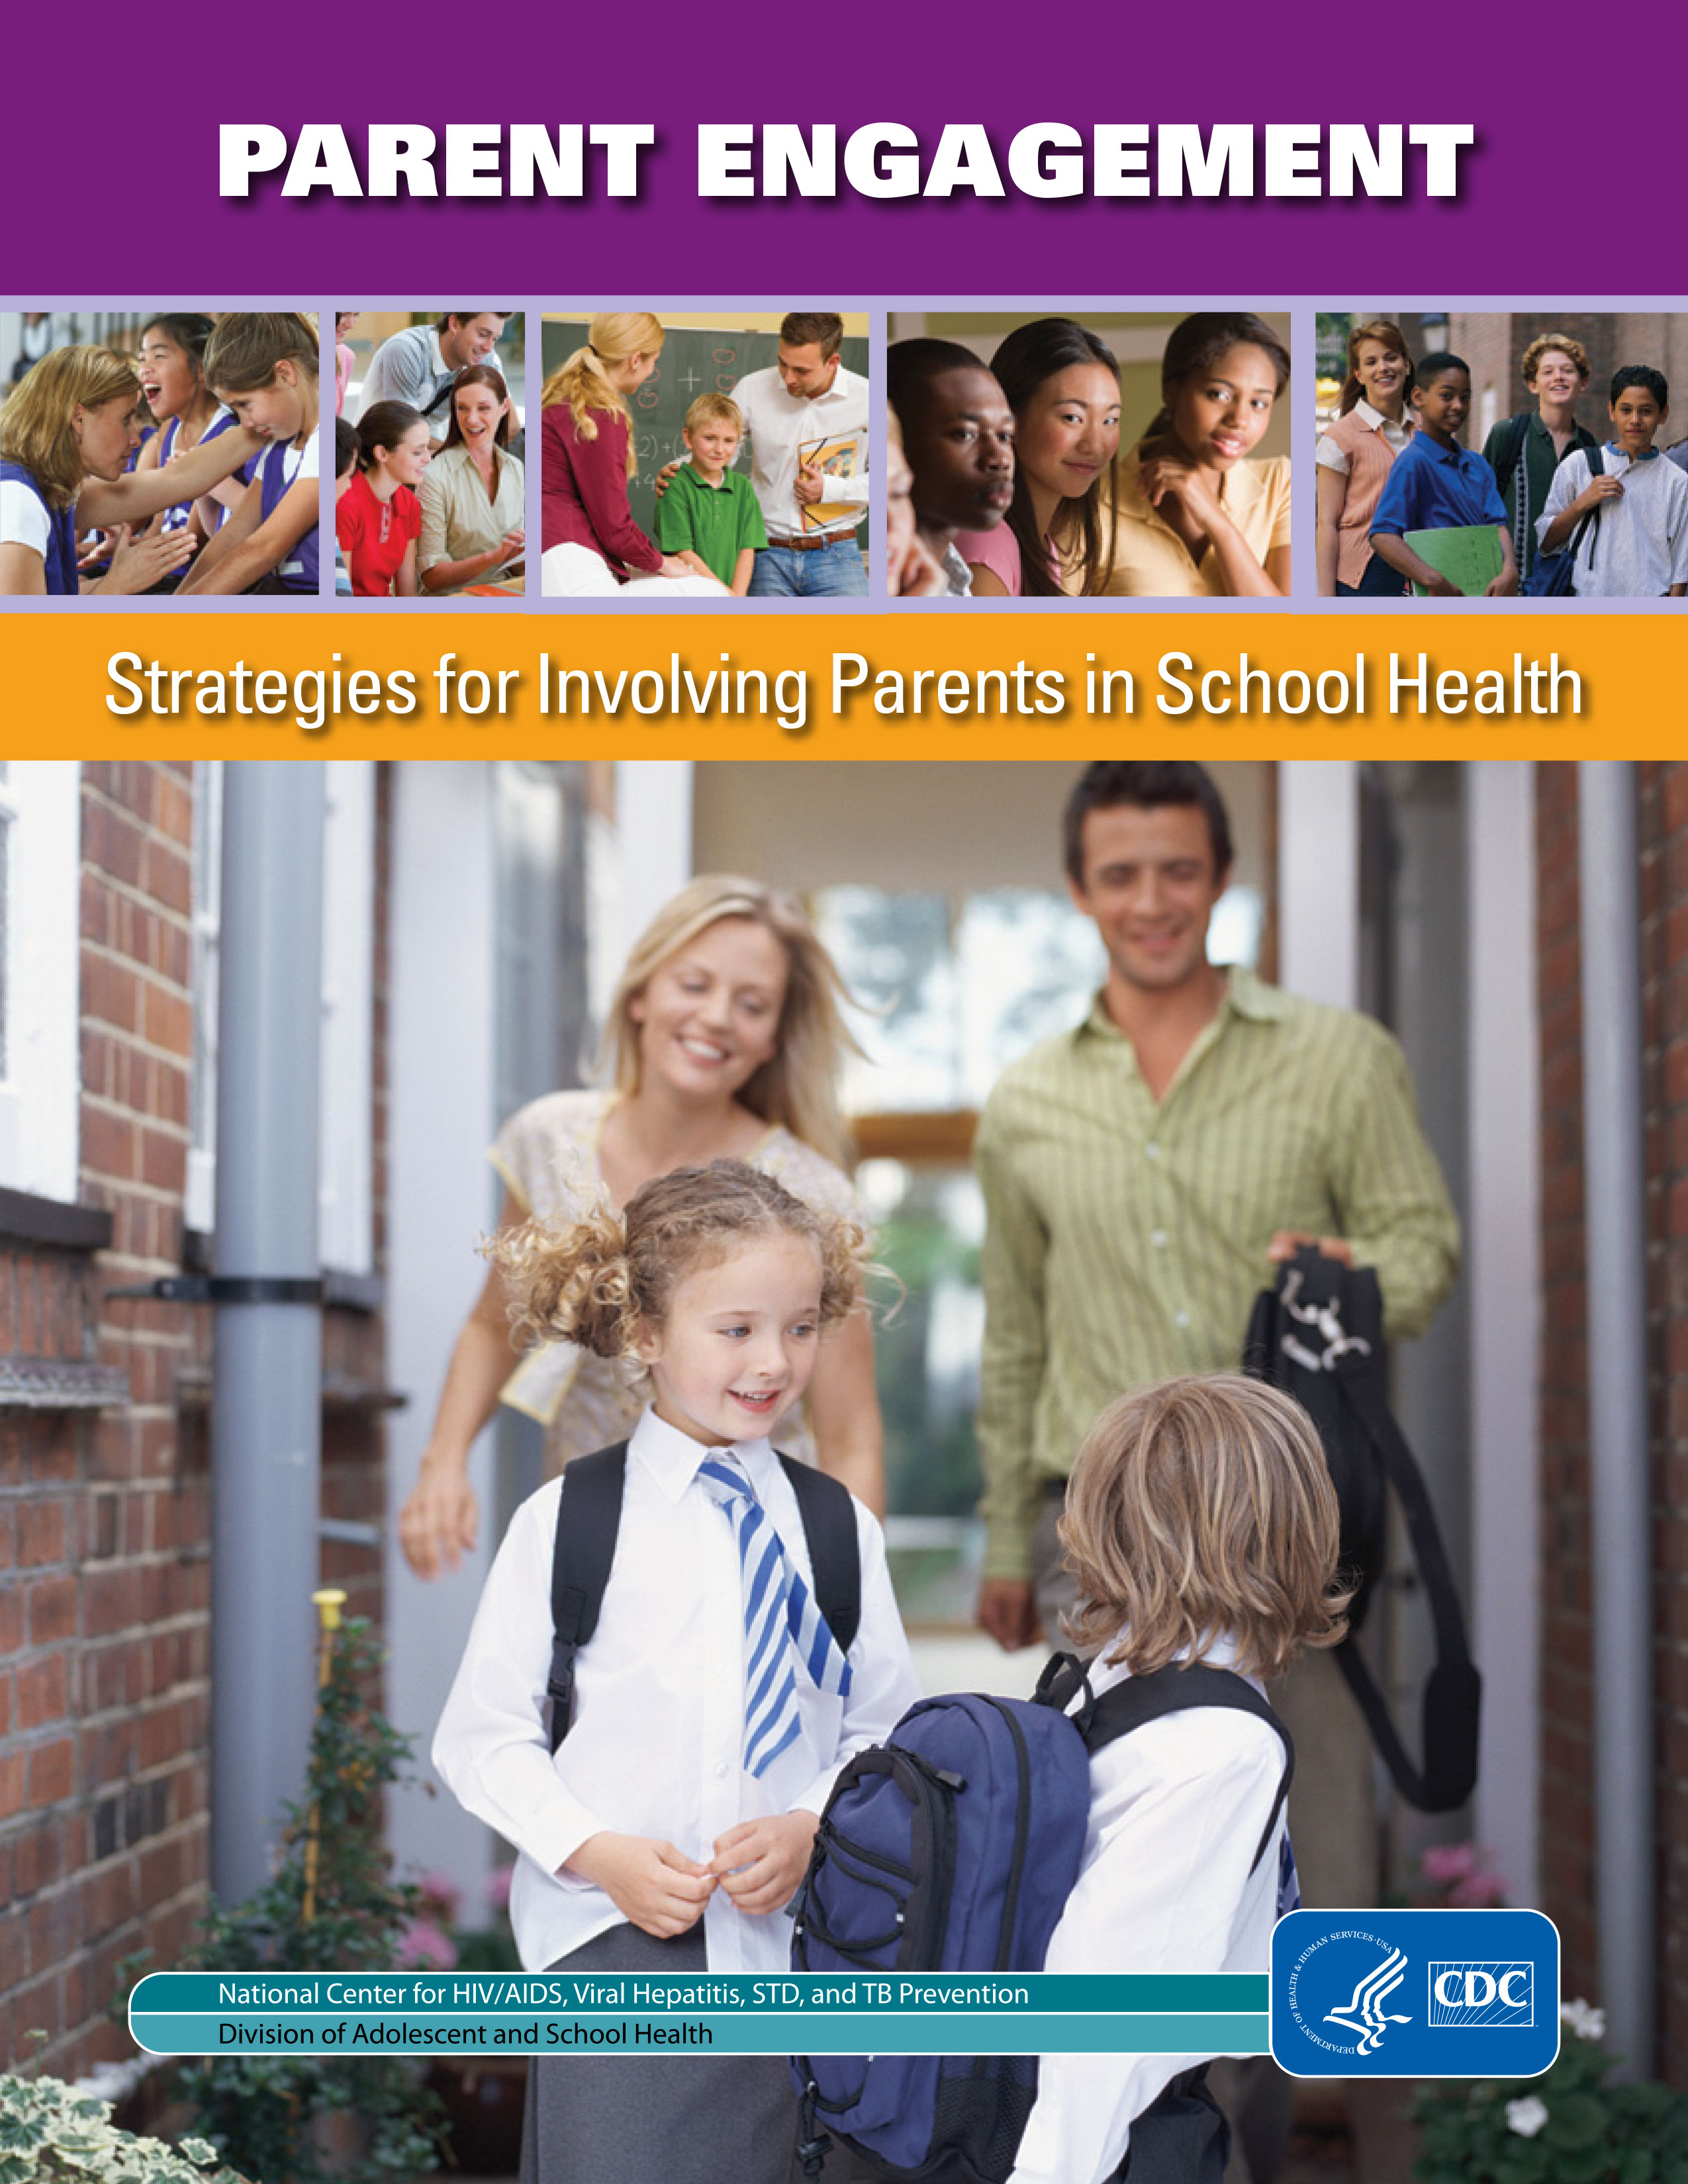 Cover of Parent Engagement Strategy Guide